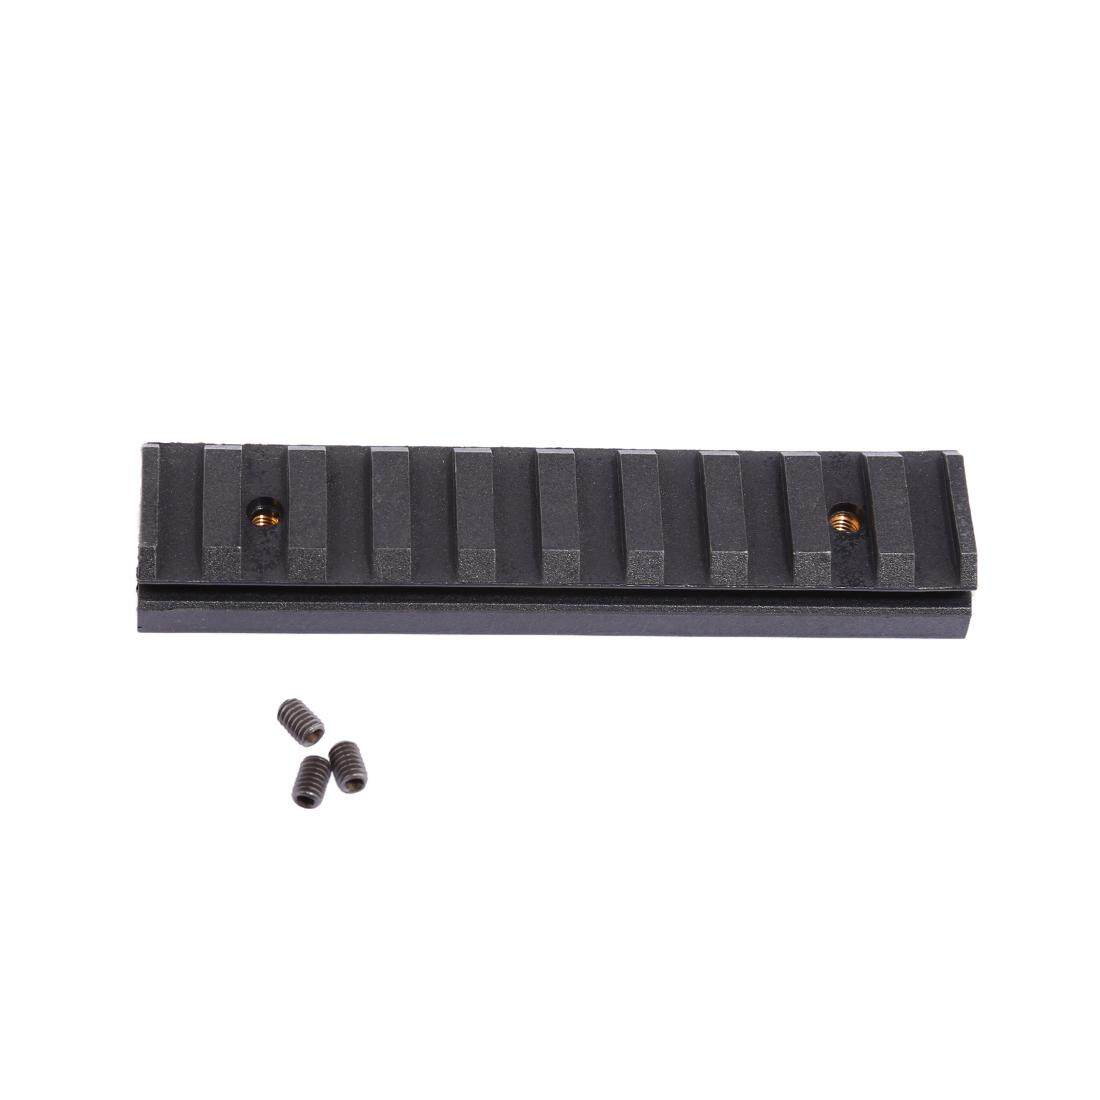 360WISH Worker 10CM Nylon Grooved Top Rail Mount Kit for Nerf with Track - Black